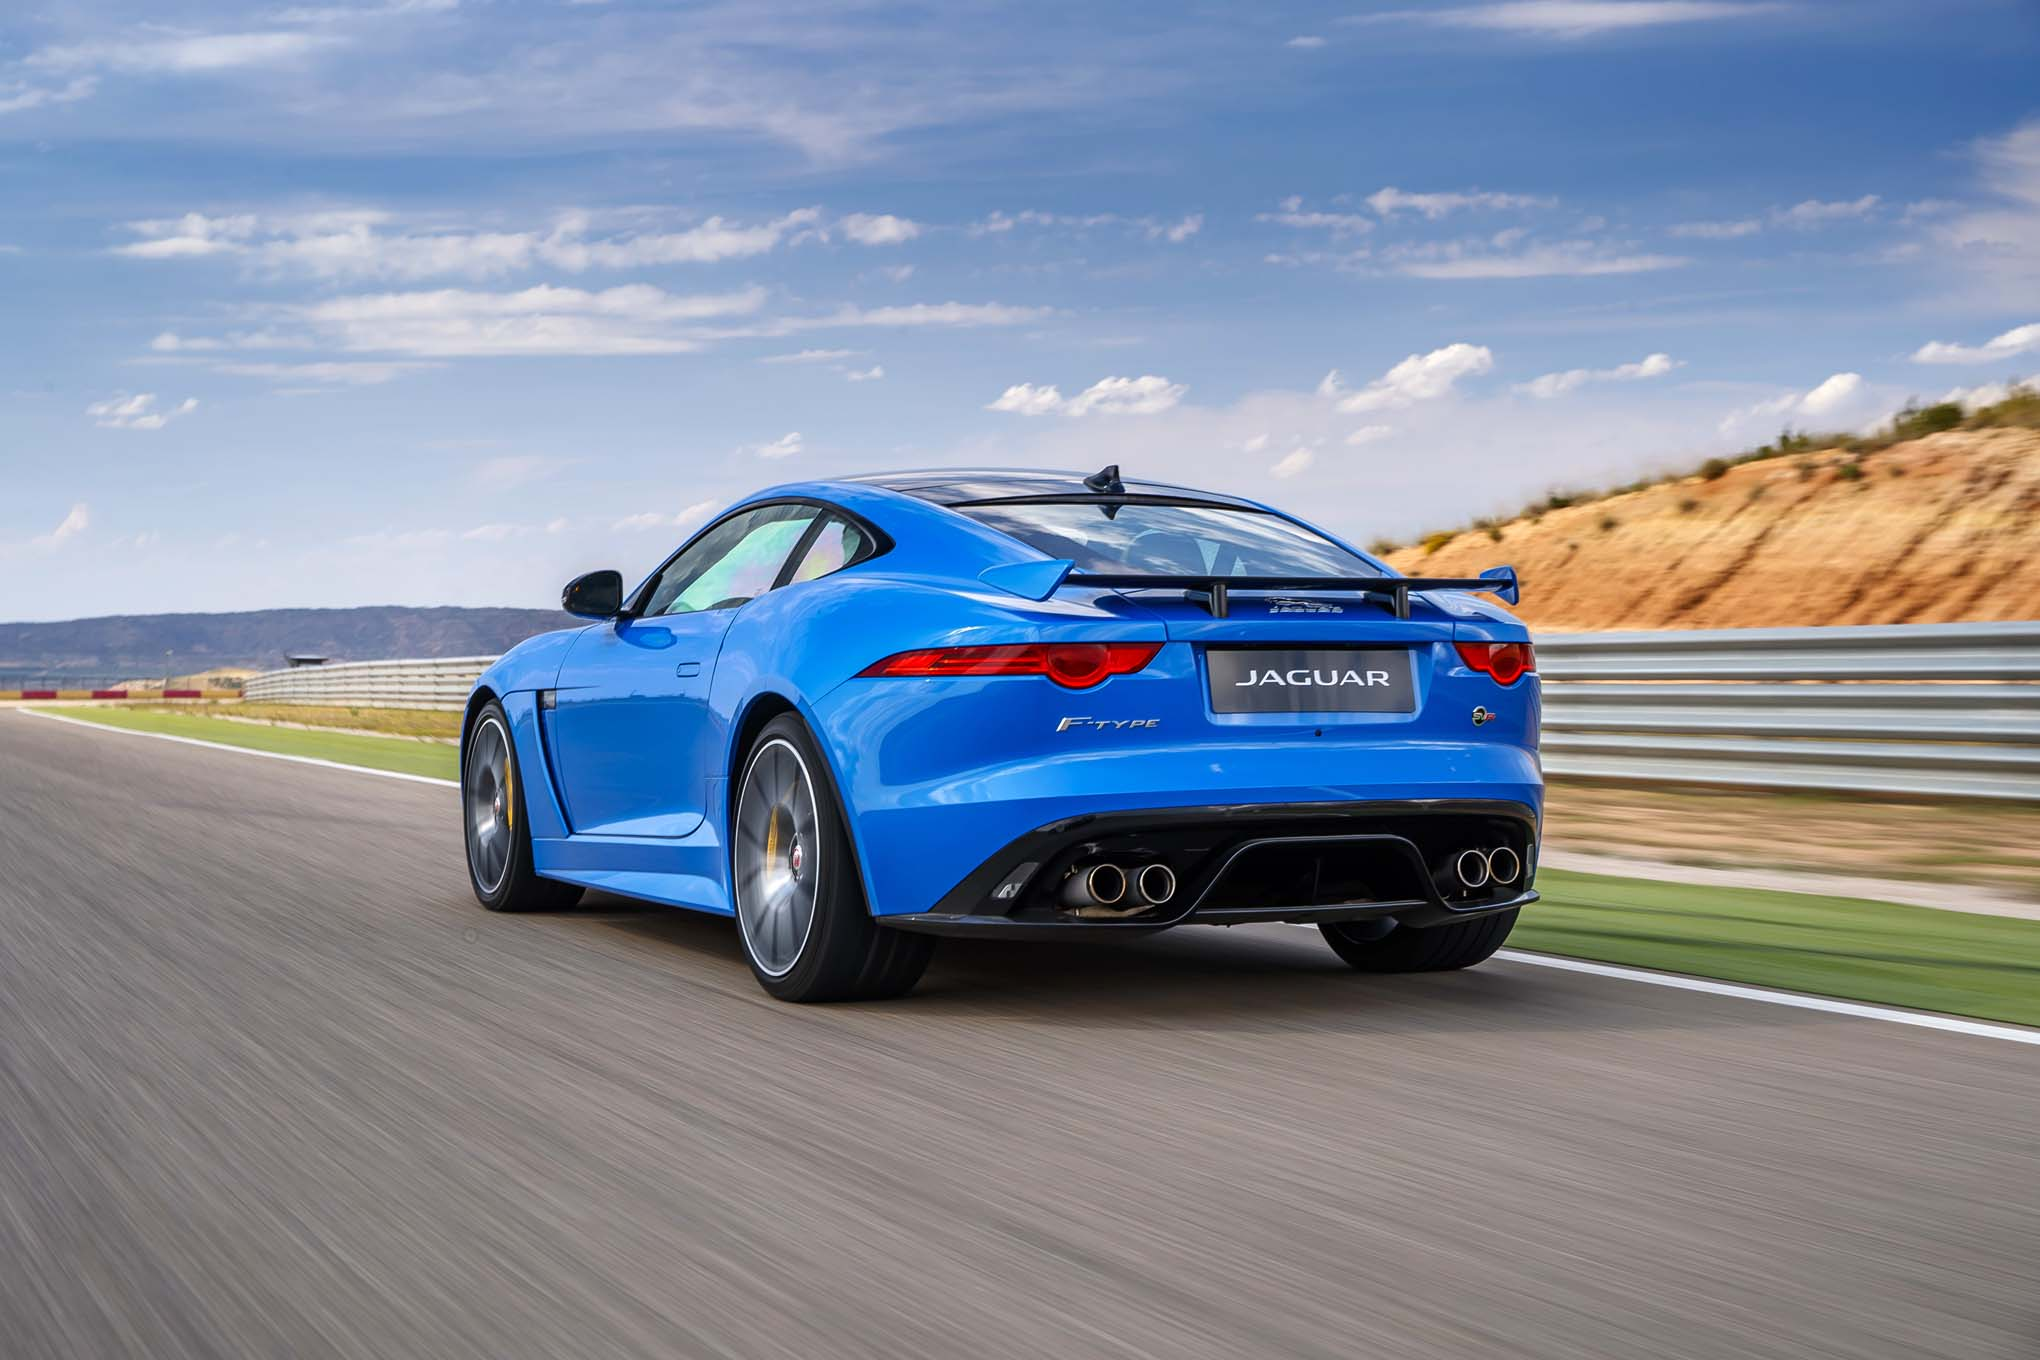 2017 jaguar f type svr first drive review automobile. Black Bedroom Furniture Sets. Home Design Ideas